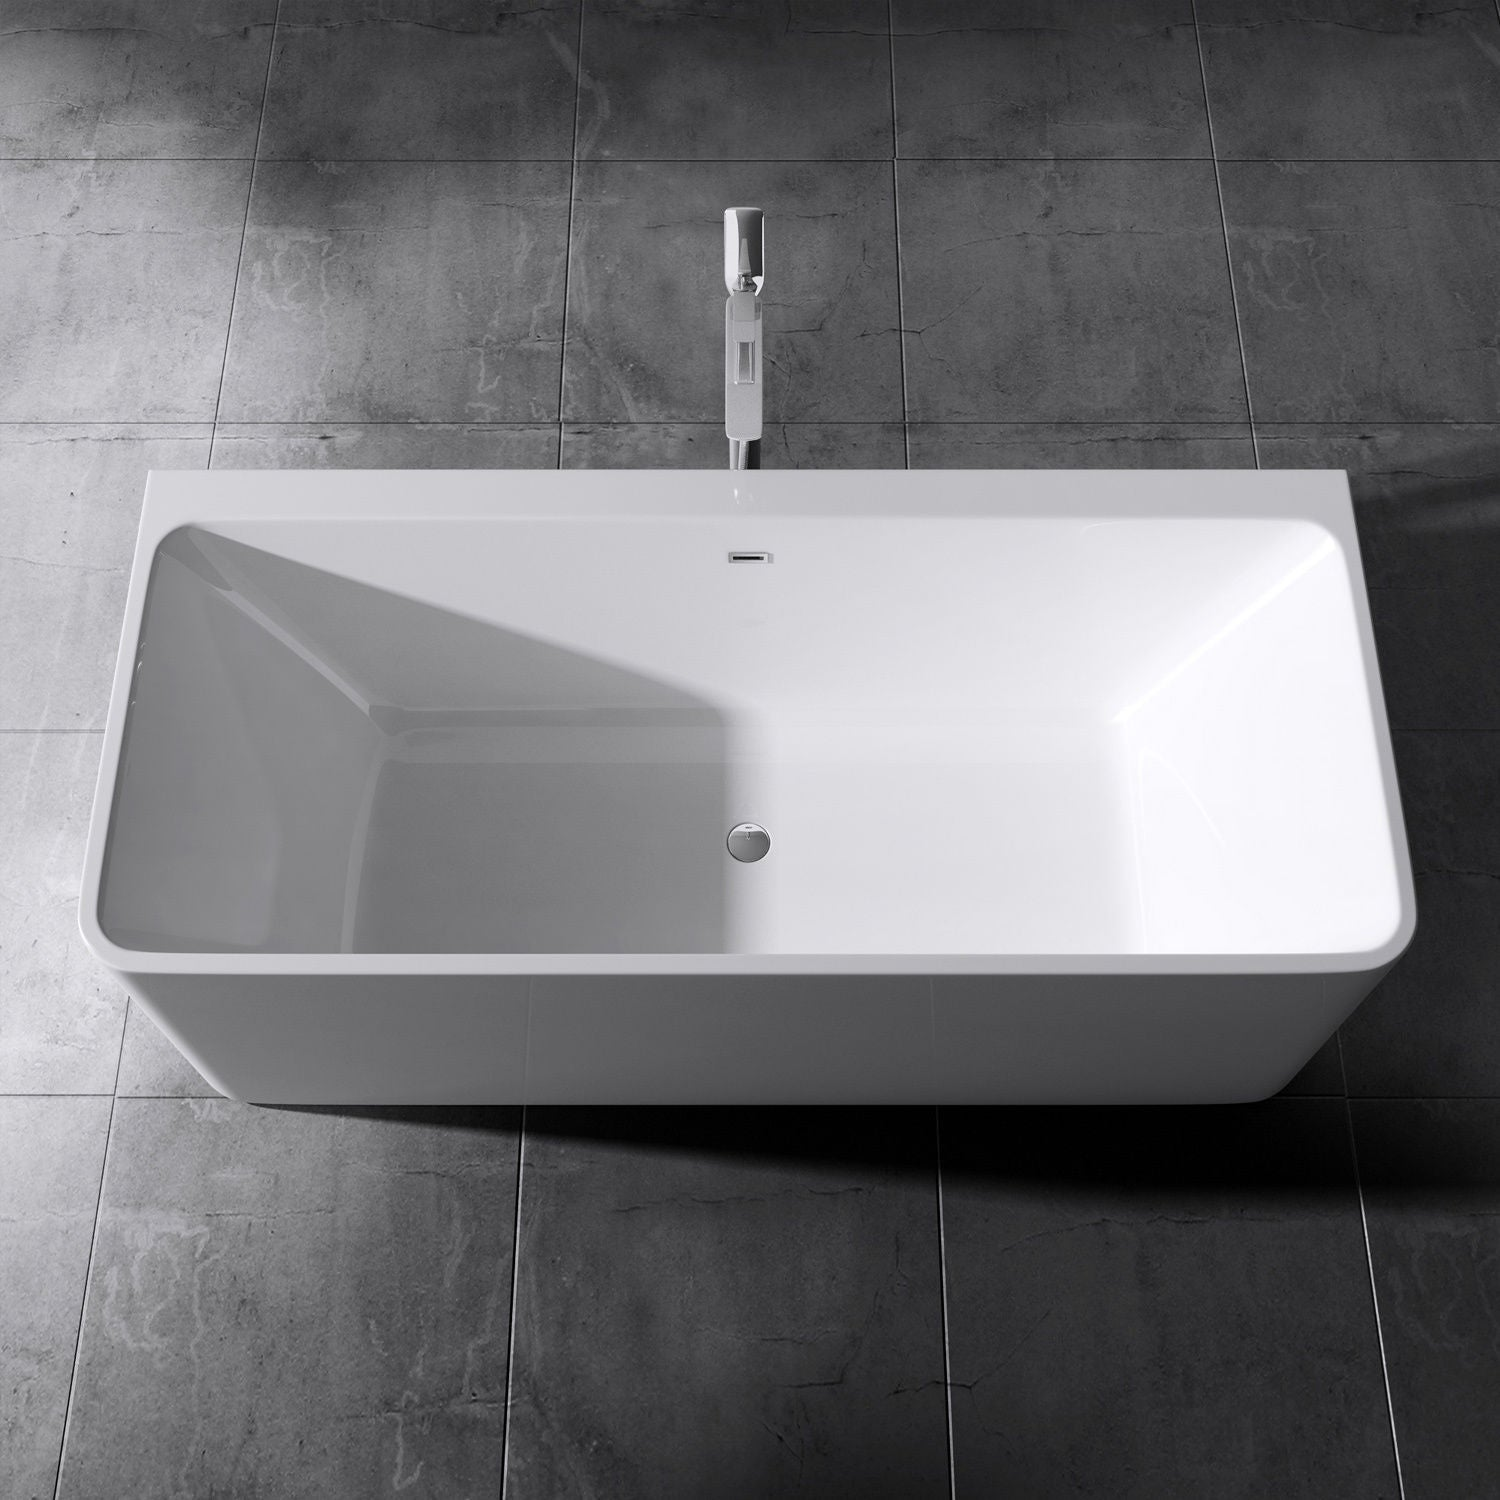 Vicenza 601-OA freestanding acrylic bath tub